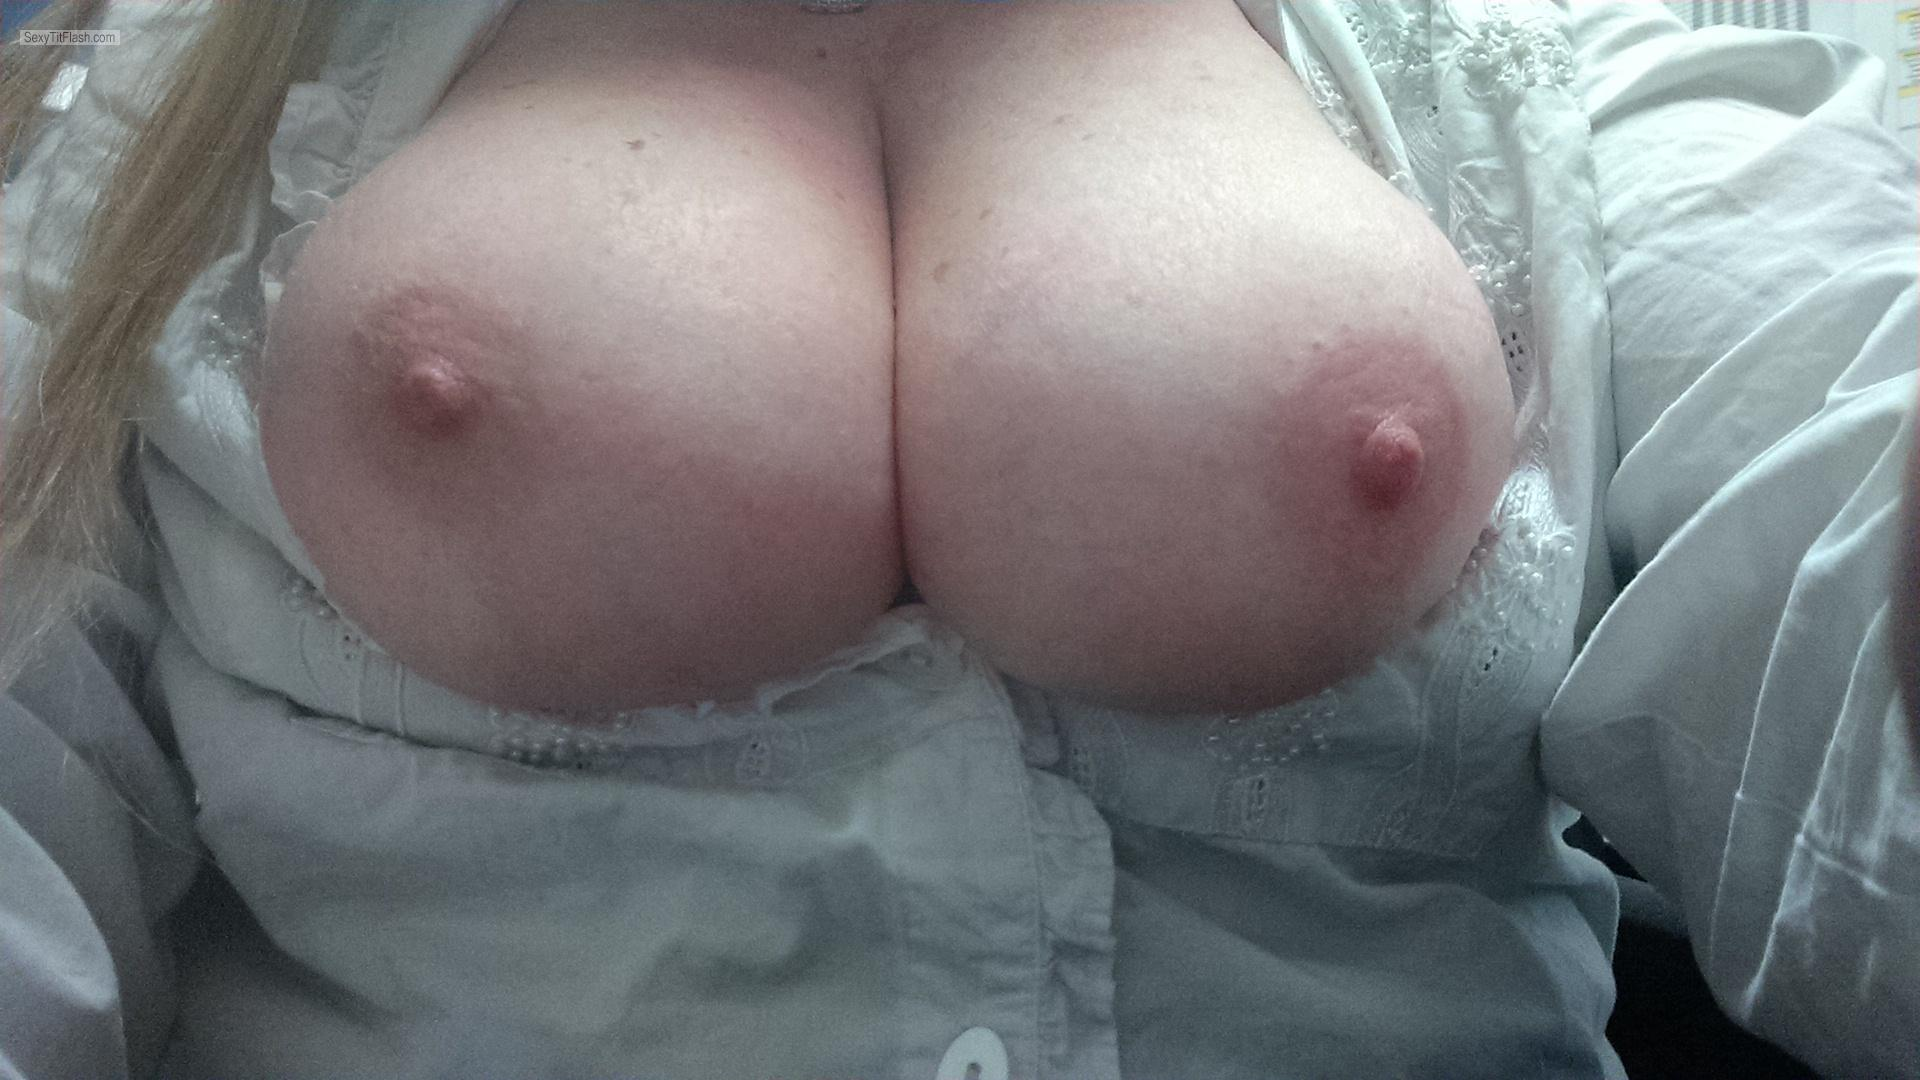 Big Tits Of My Girlfriend Selfie by Hot Sub ( Willow Girl)